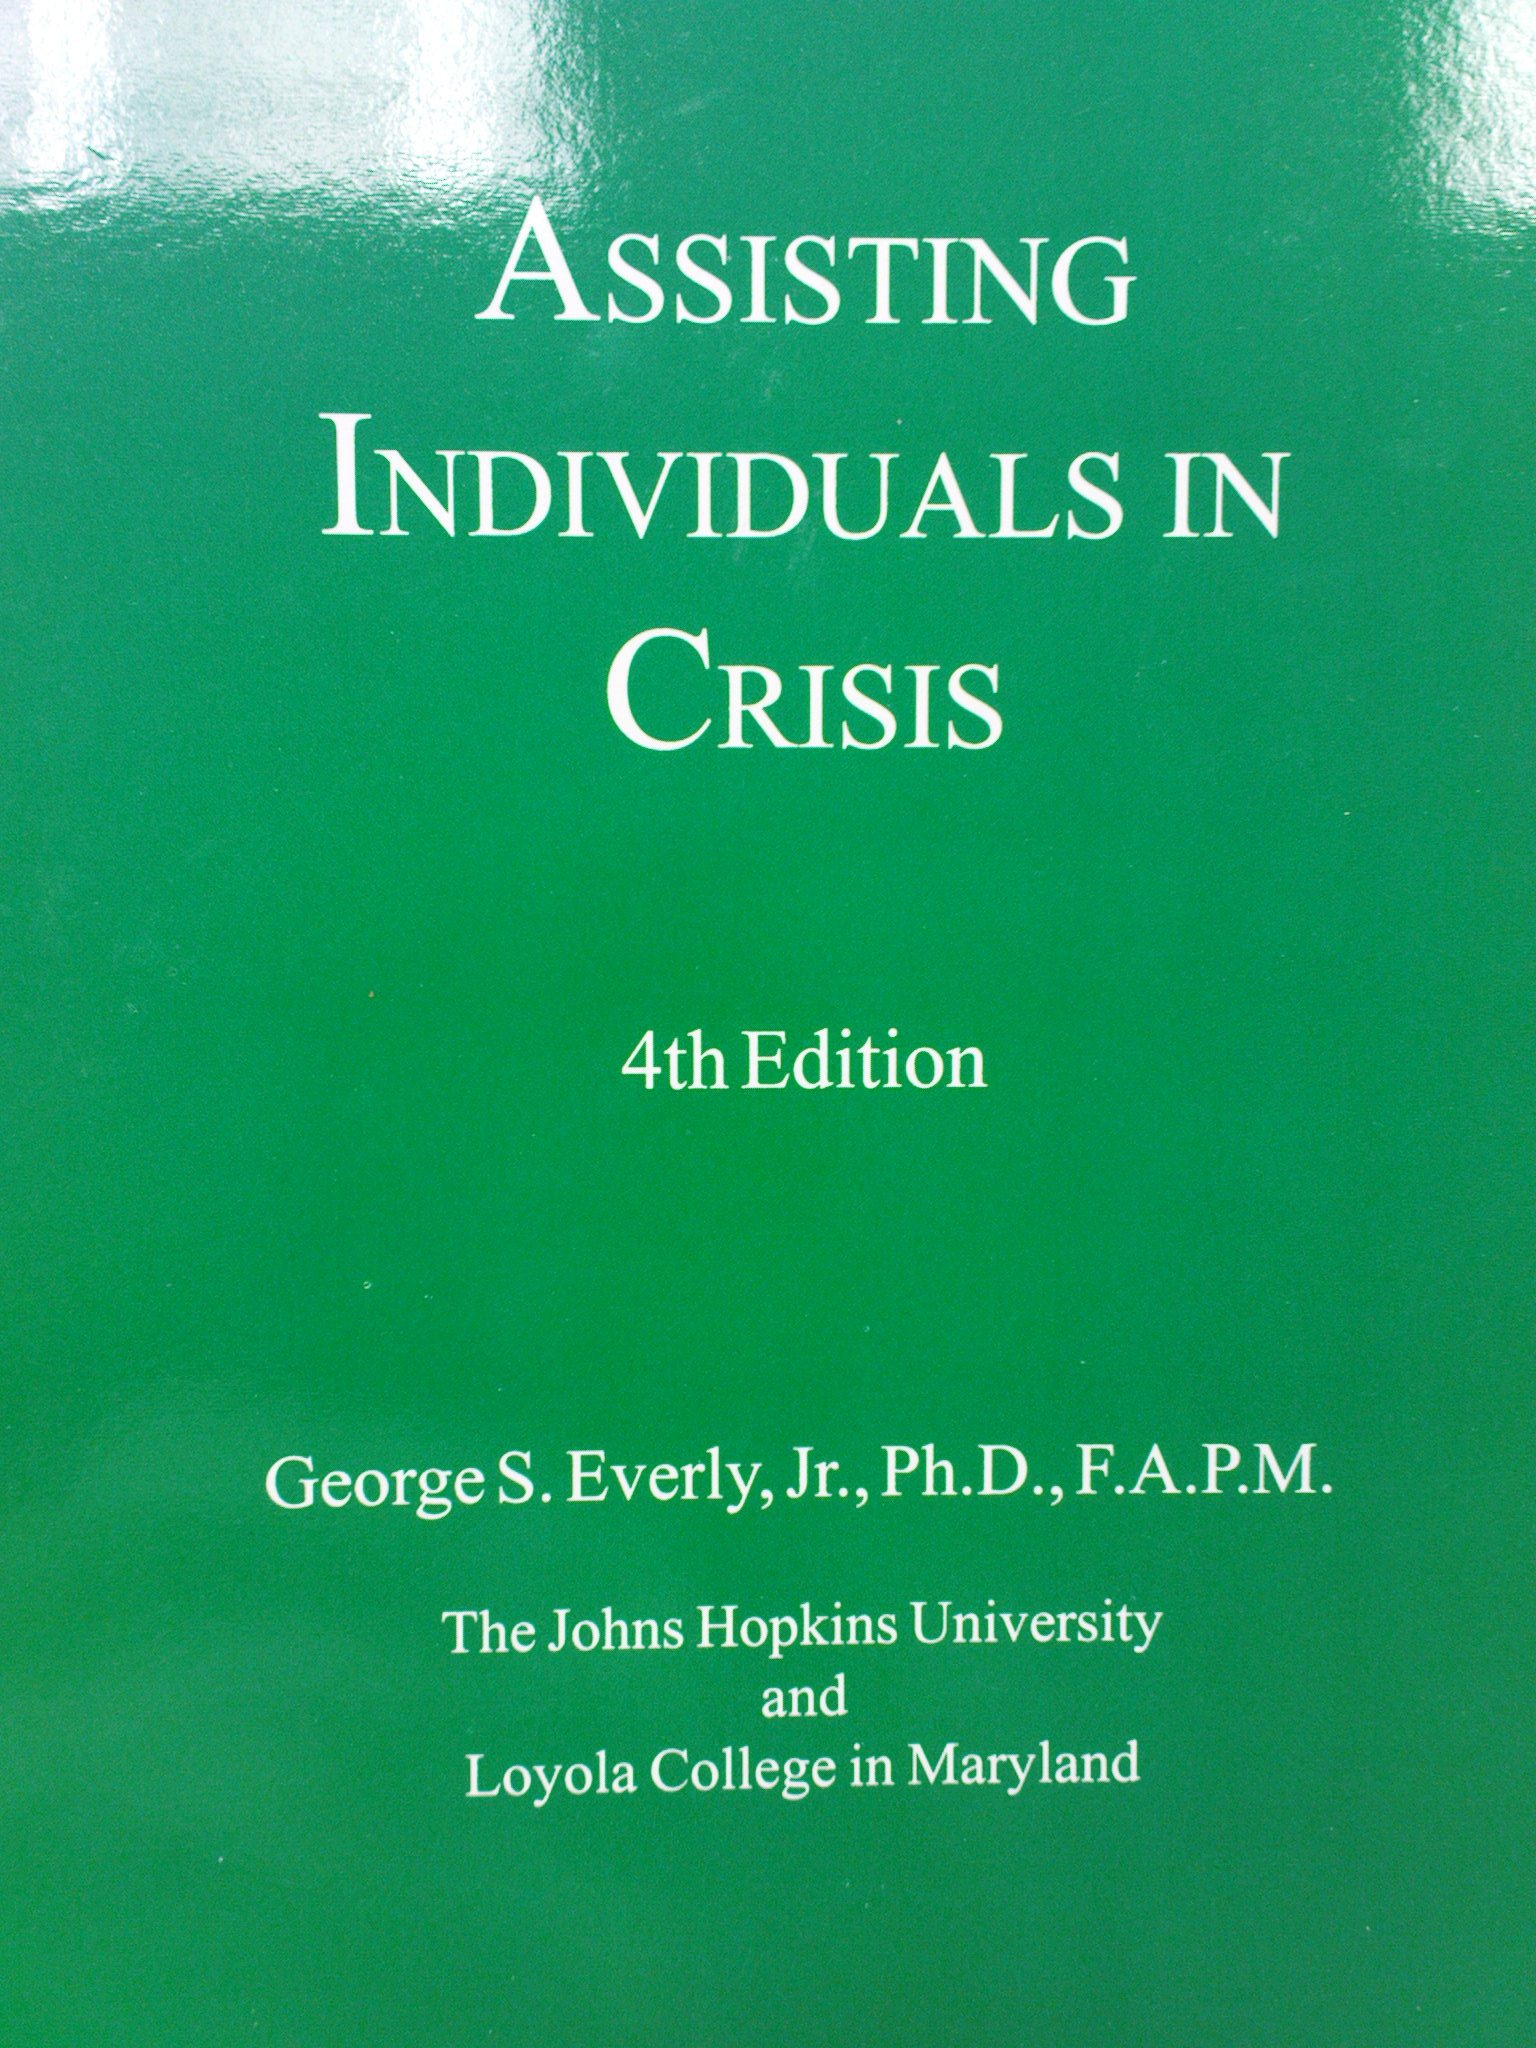 Assisting Individuals in Crisis